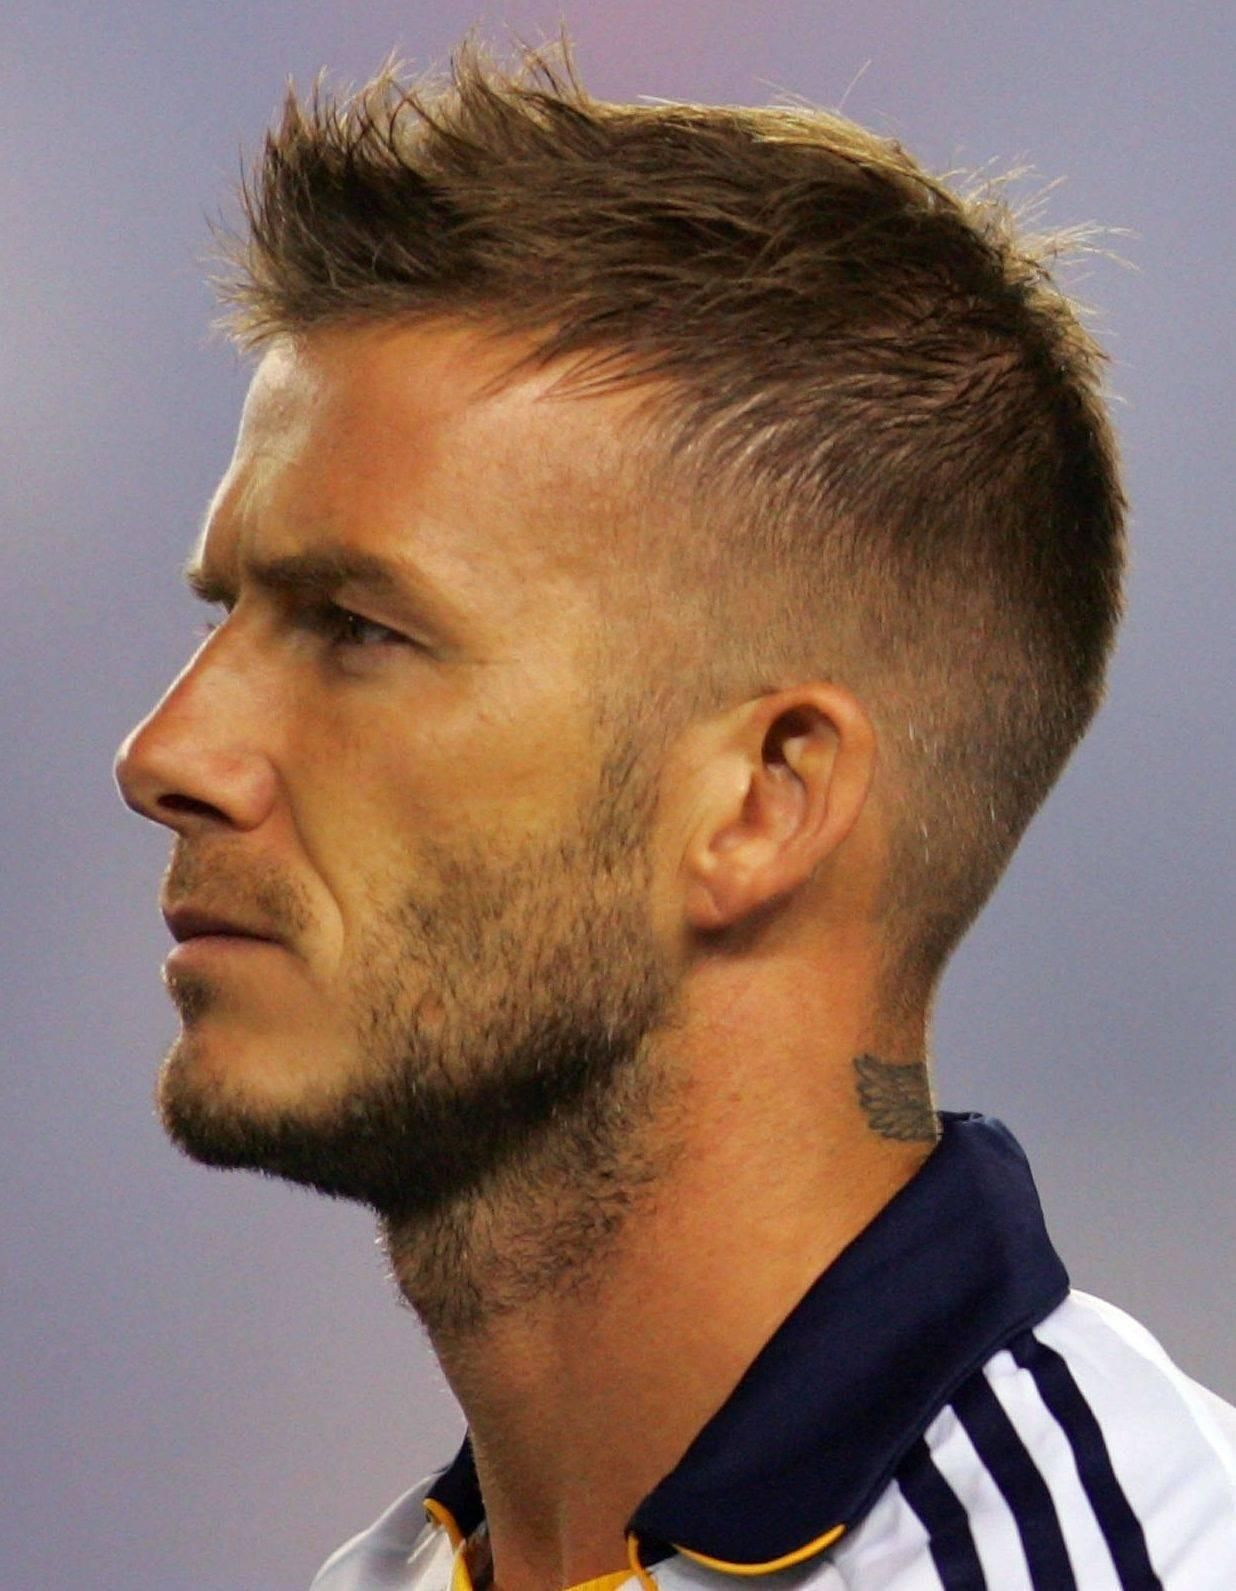 David Beckham Hairstyle Picture Gallery | Hair style, Haircuts and ...